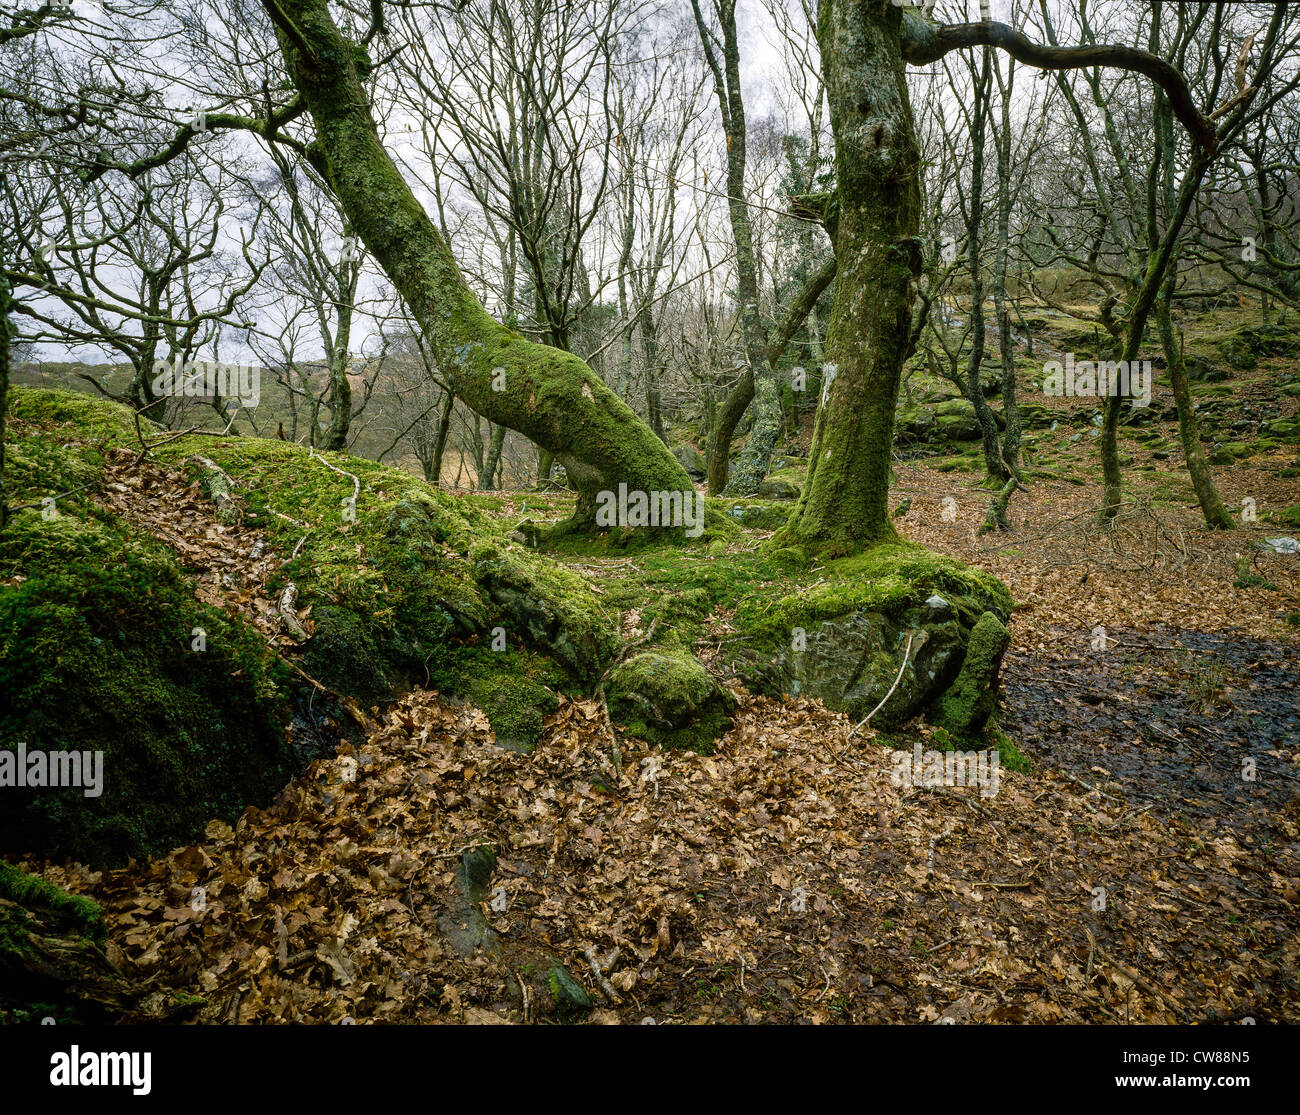 Ancient oak woodland in North Wales near Nantmor in Snowdonia National Park with moss-covered trees and rocks . - Stock Image